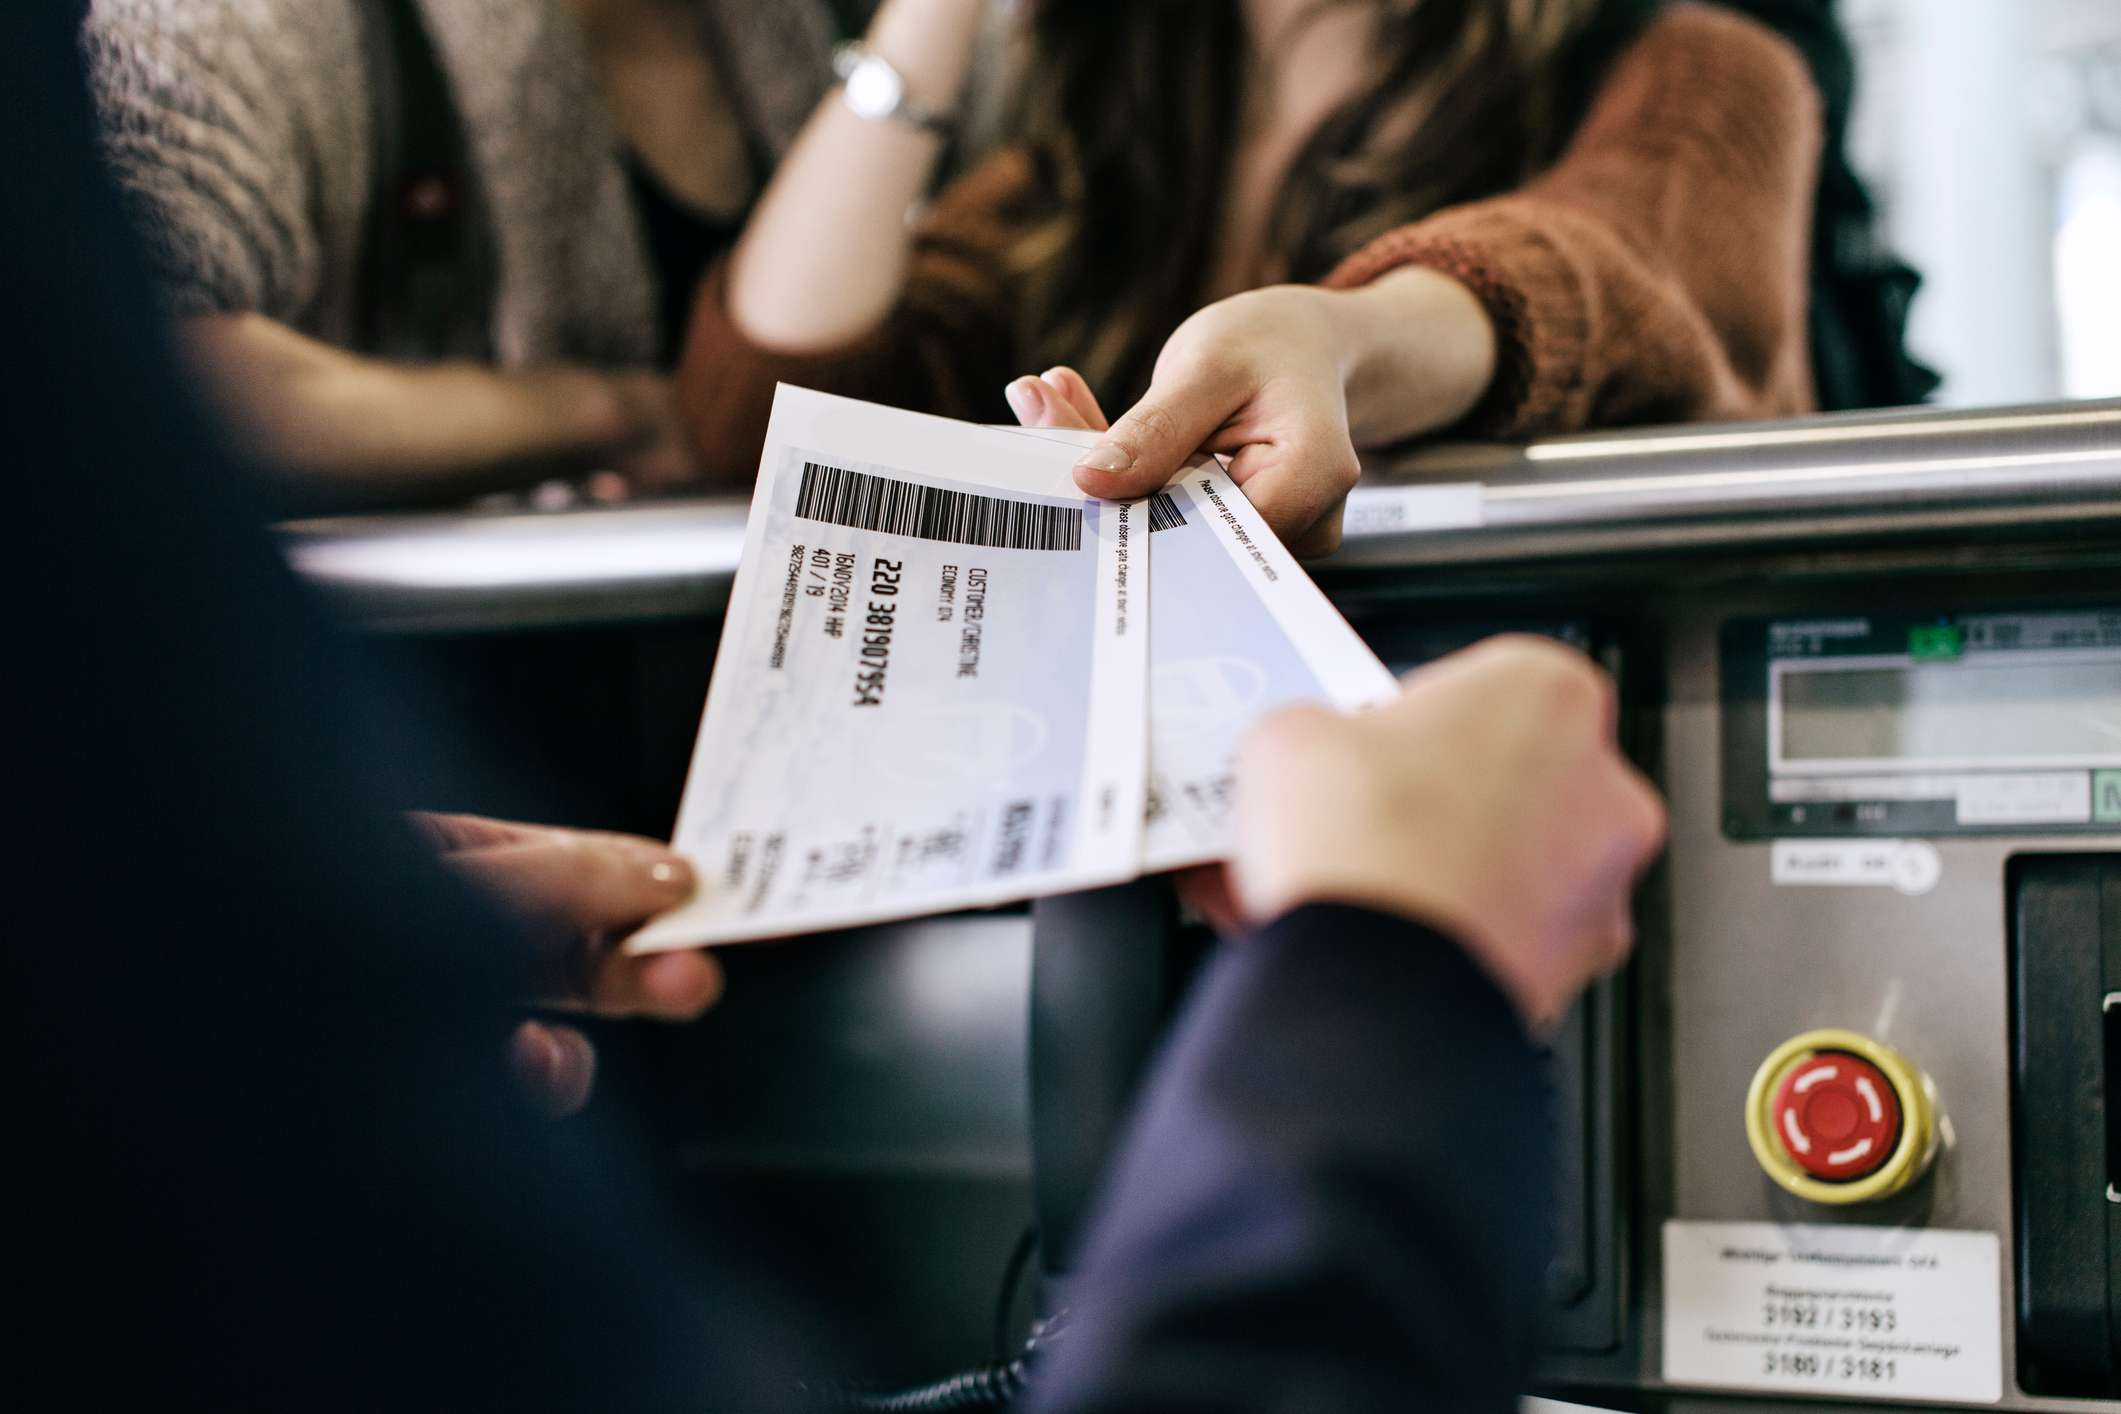 Travellers getting boarding passes at check-in